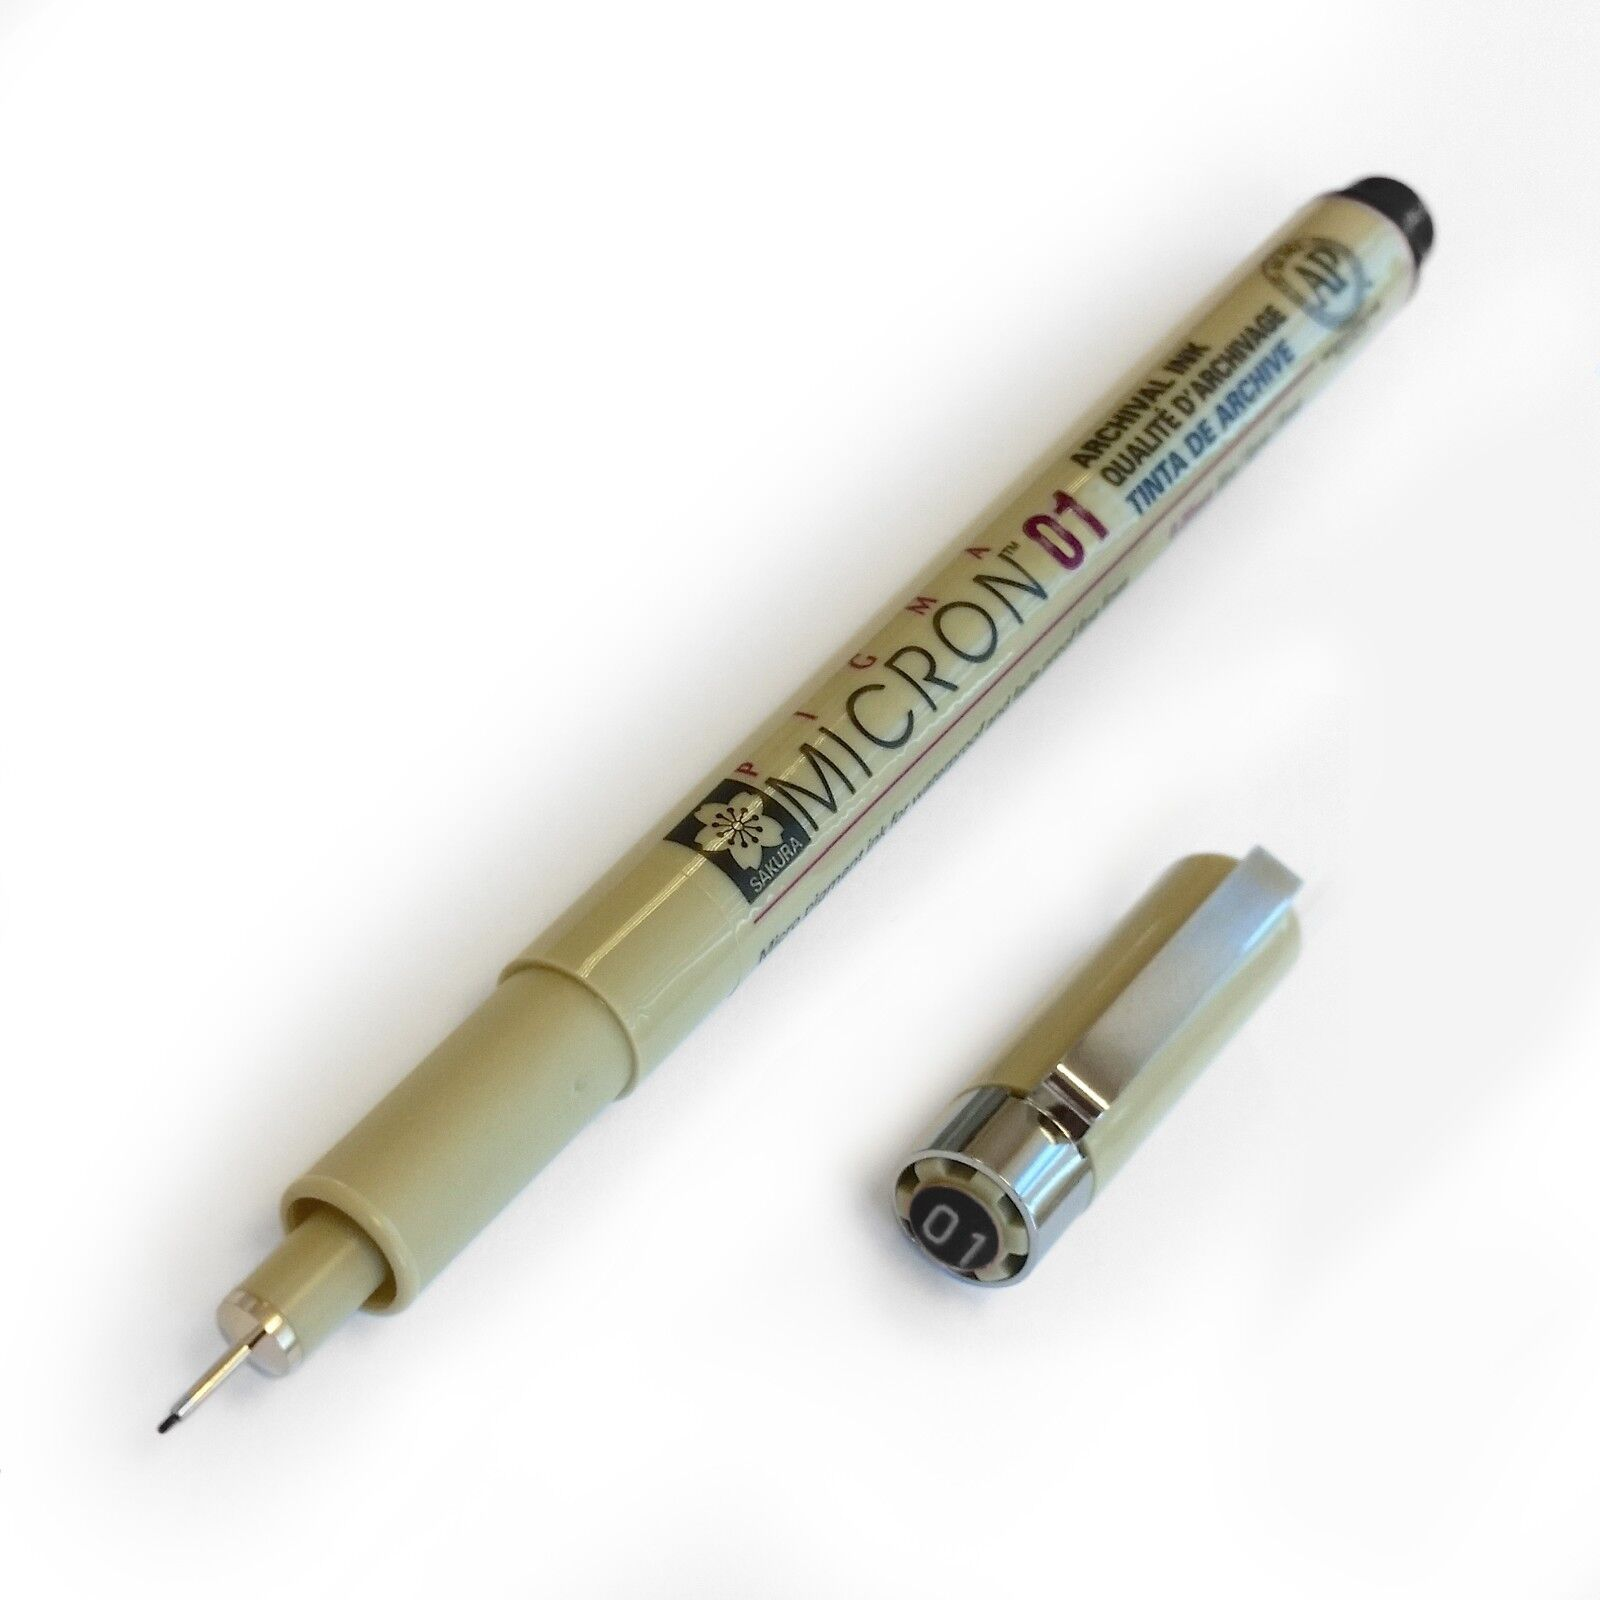 Sakura Pigma Micron Fineliner (01) 0.25mm line - All Colours Available